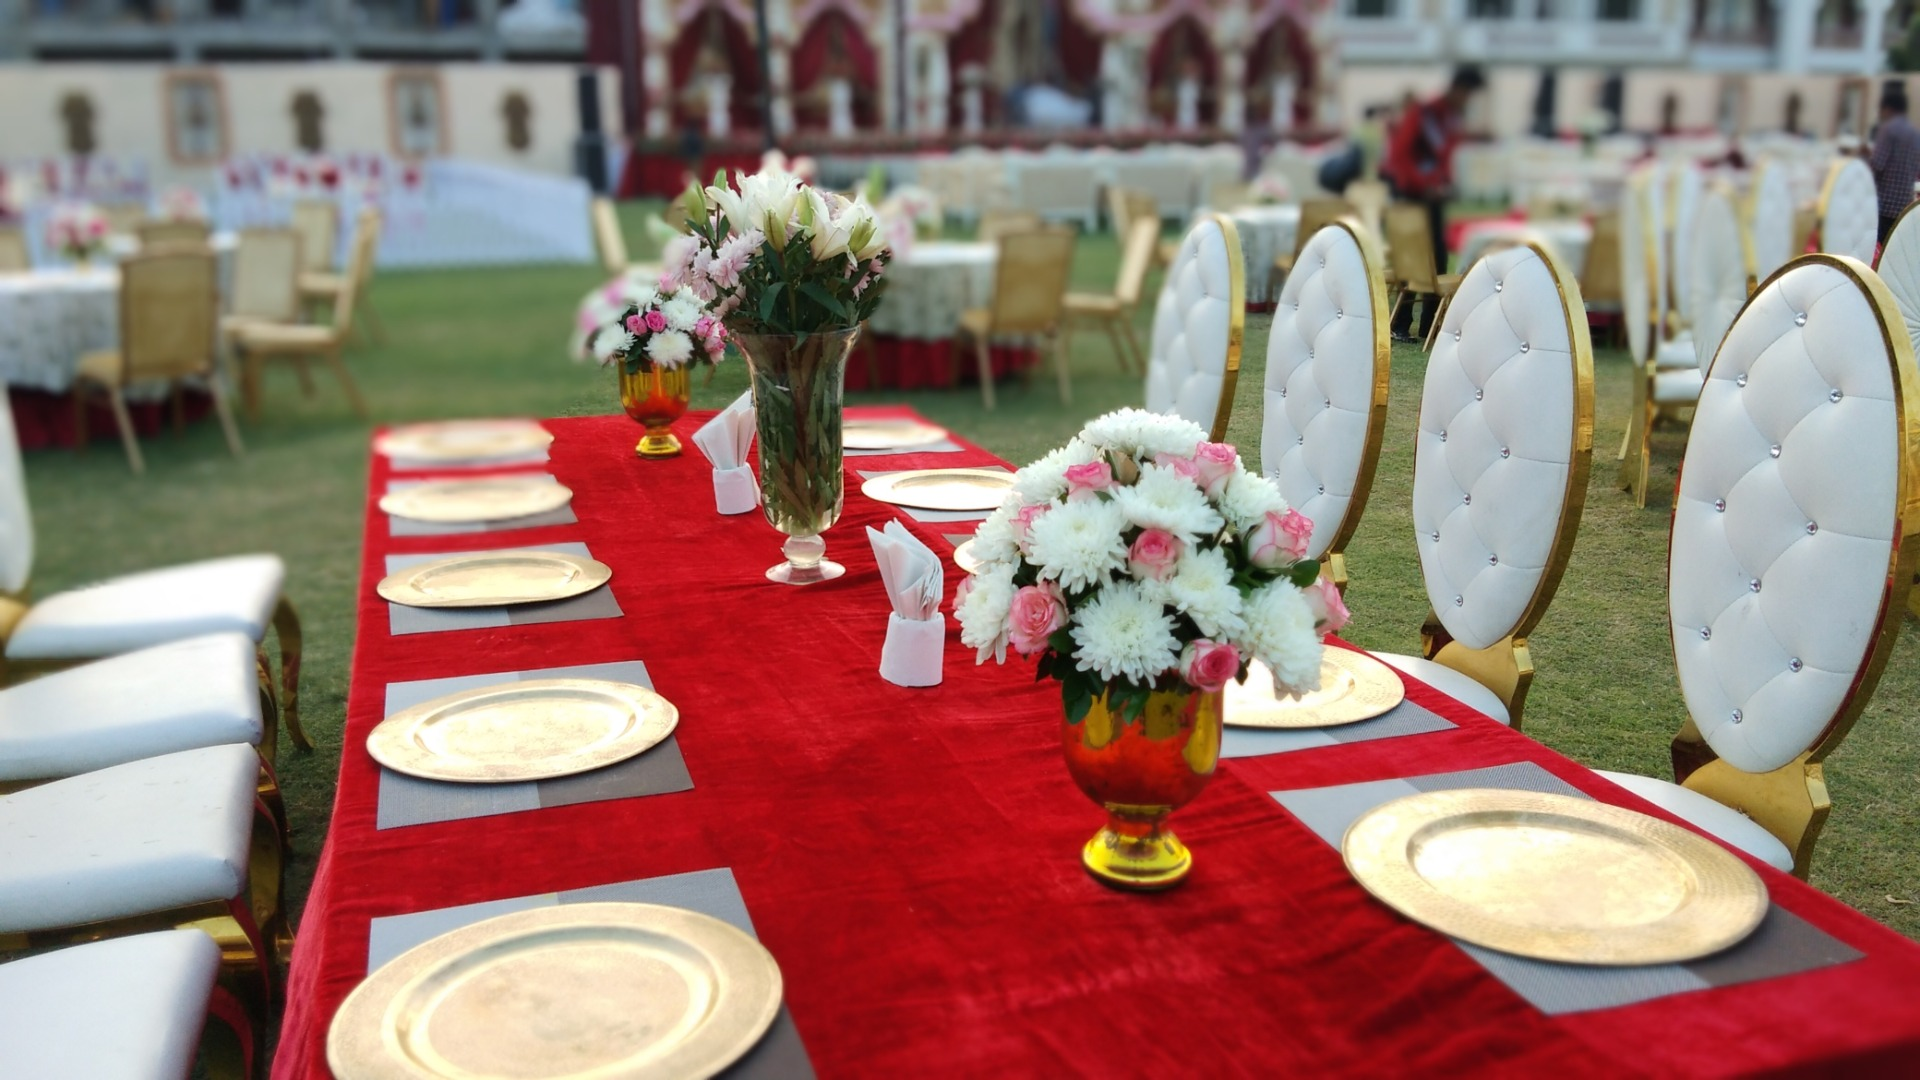 table set with golden plates and flowers as centerpiece